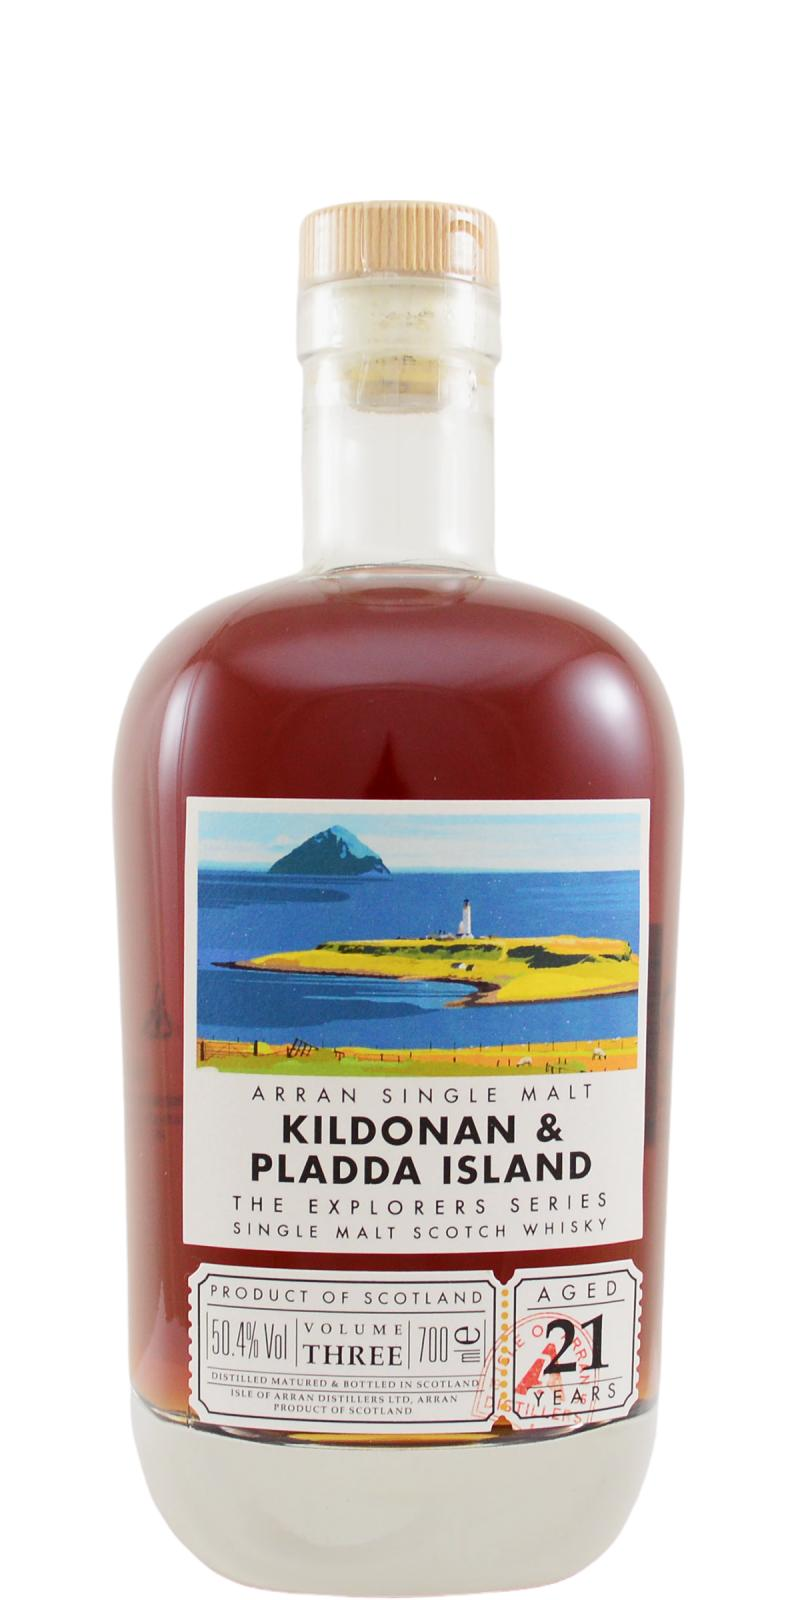 The Dramble reviews Arran Kildonan and Pladda Island 21 year old